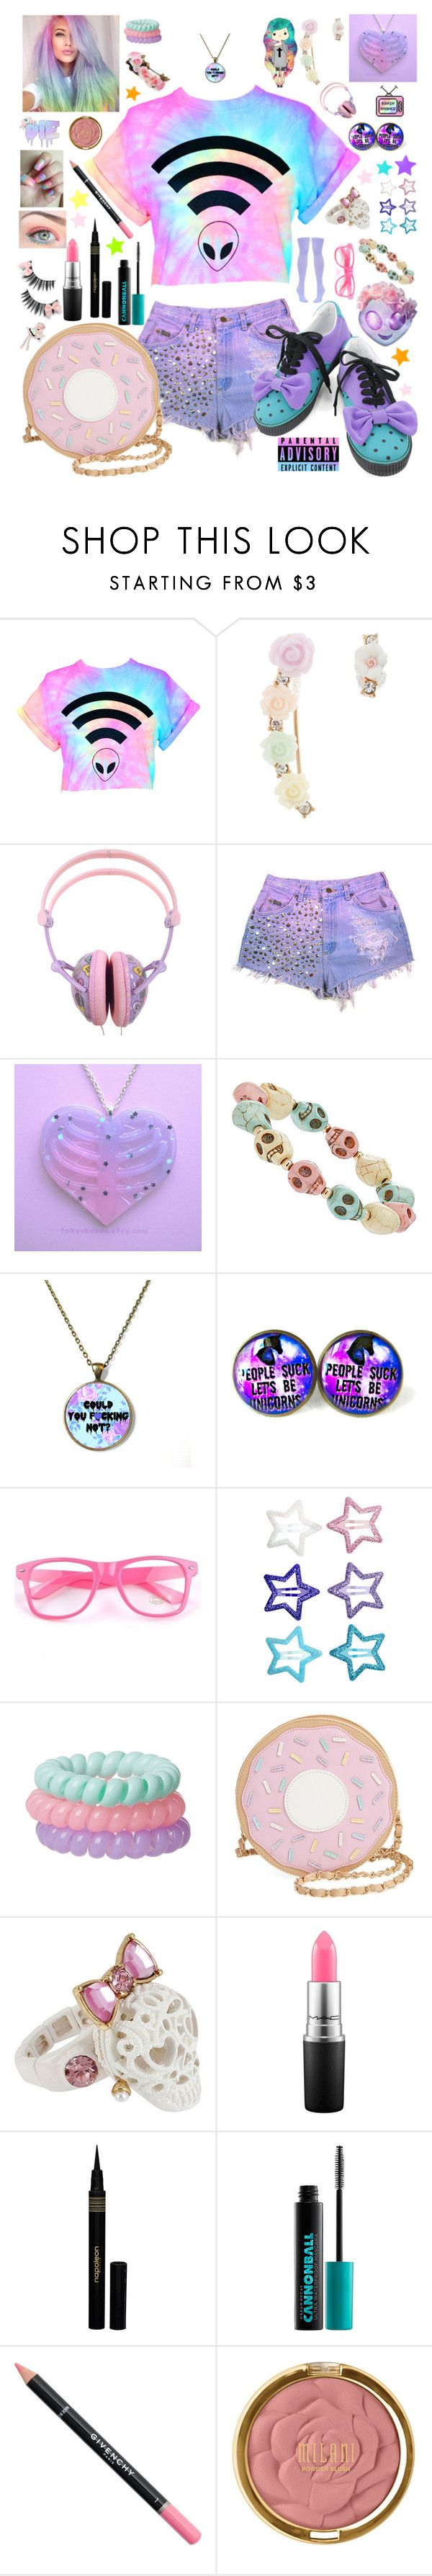 """How To Be A Pastel Goth "" by aspiretoinspire22 ❤ liked on Polyvore featuring Monsoon, Dorothy Perkins, H&M, Betsey Johnson, MAC Cosmetics, Napoleon Perdis, Urban Decay, Givenchy, Milani and Dolce&Gabbana"